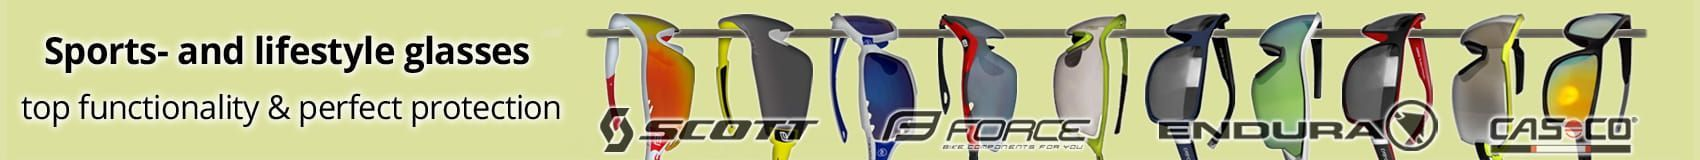 Sports- and lifestyle glasses - top functionality & perfect protection